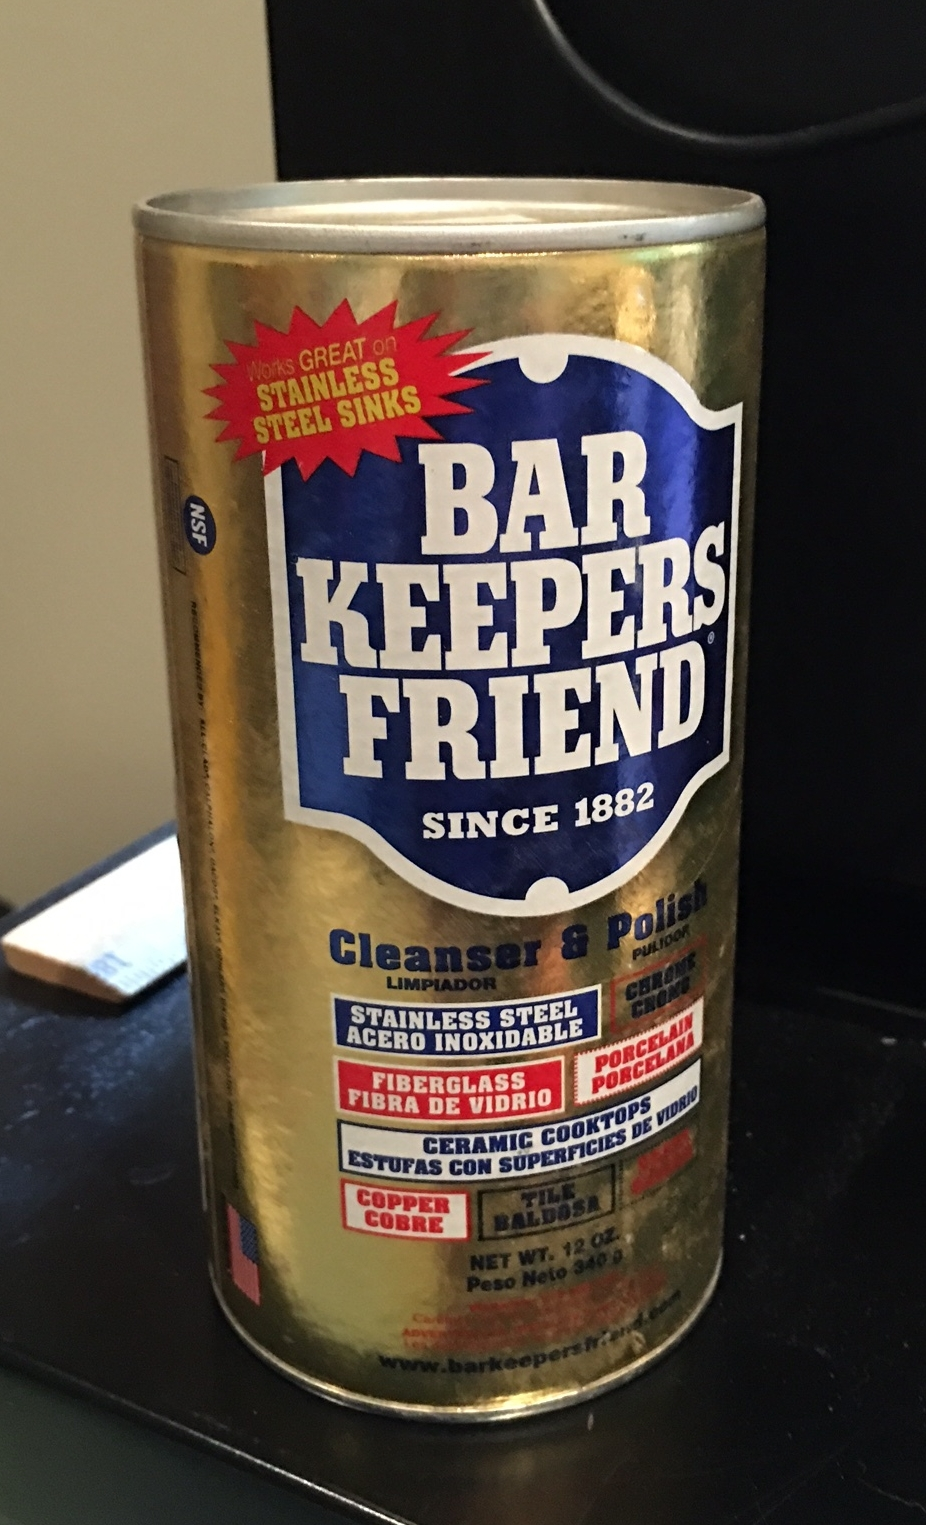 Bar keepers Friend.JPG